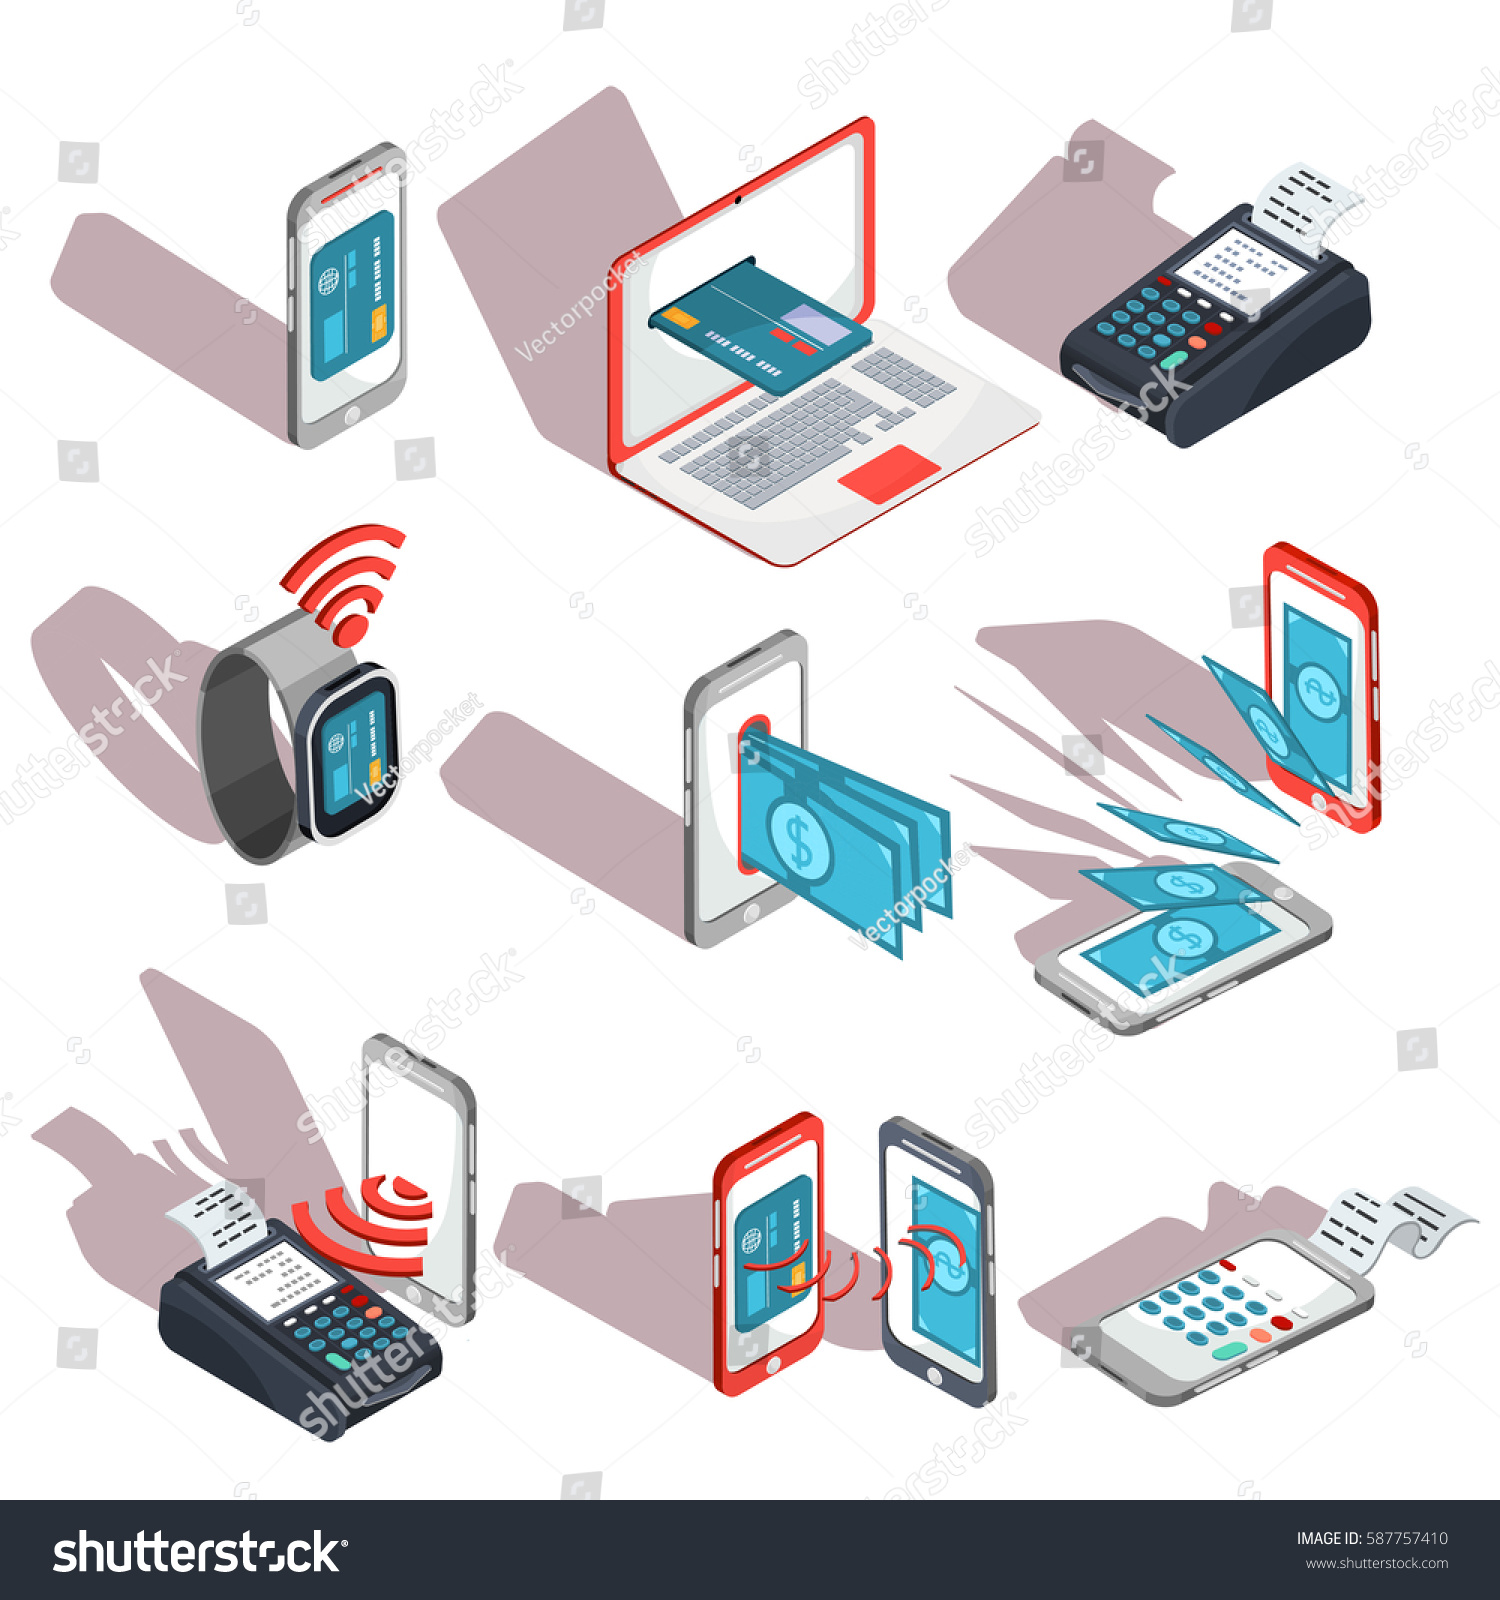 the convenience brought by mobile phones Even if a device is not purchased through, or registered with kt (such as a phone brought from your previous carrier that cdma mobile phones are not compatible, as they are different from wcdma phones convenience stores.